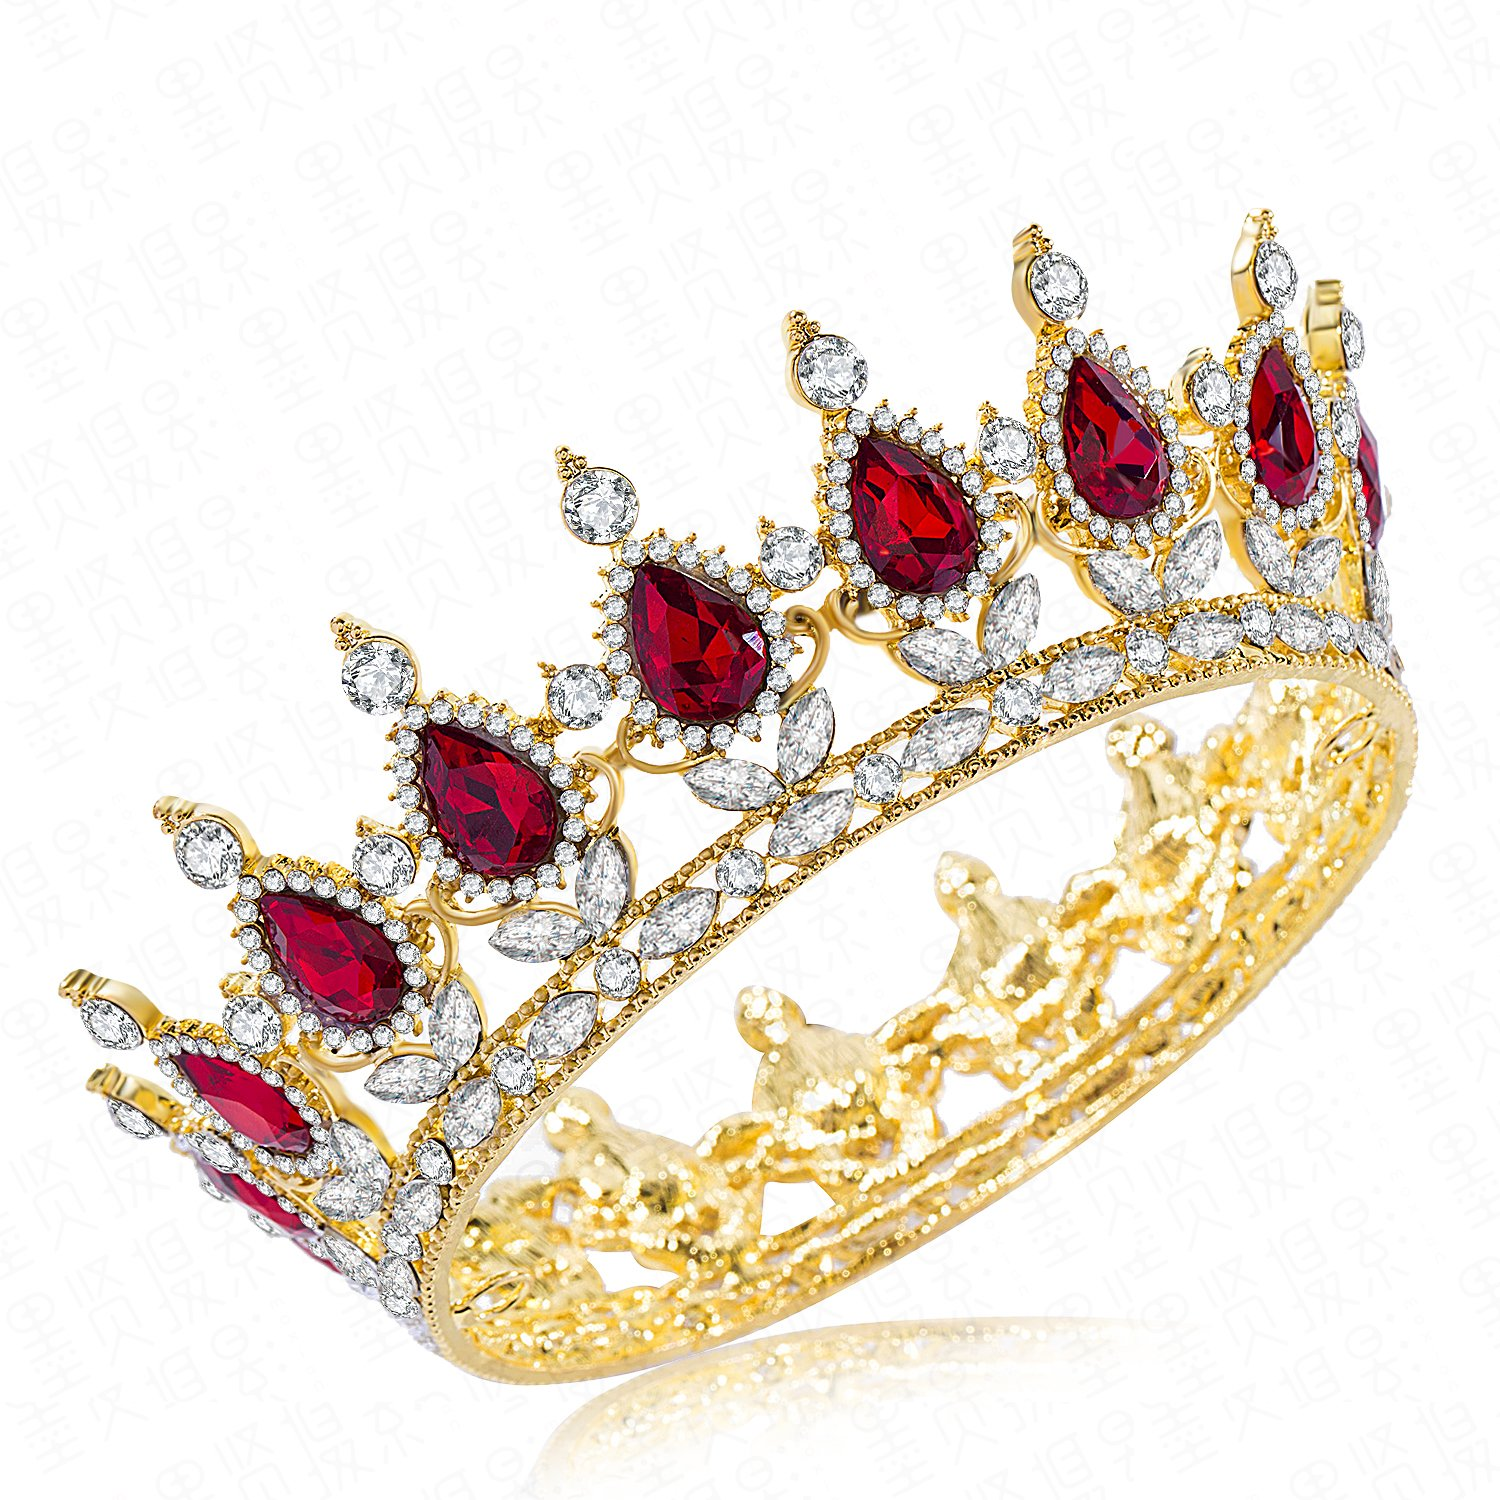 CamingHG Rhinestone Cake Topper Crown Fancy Party Cake Decoration Princess and Prince Headpiece (Gold-red)